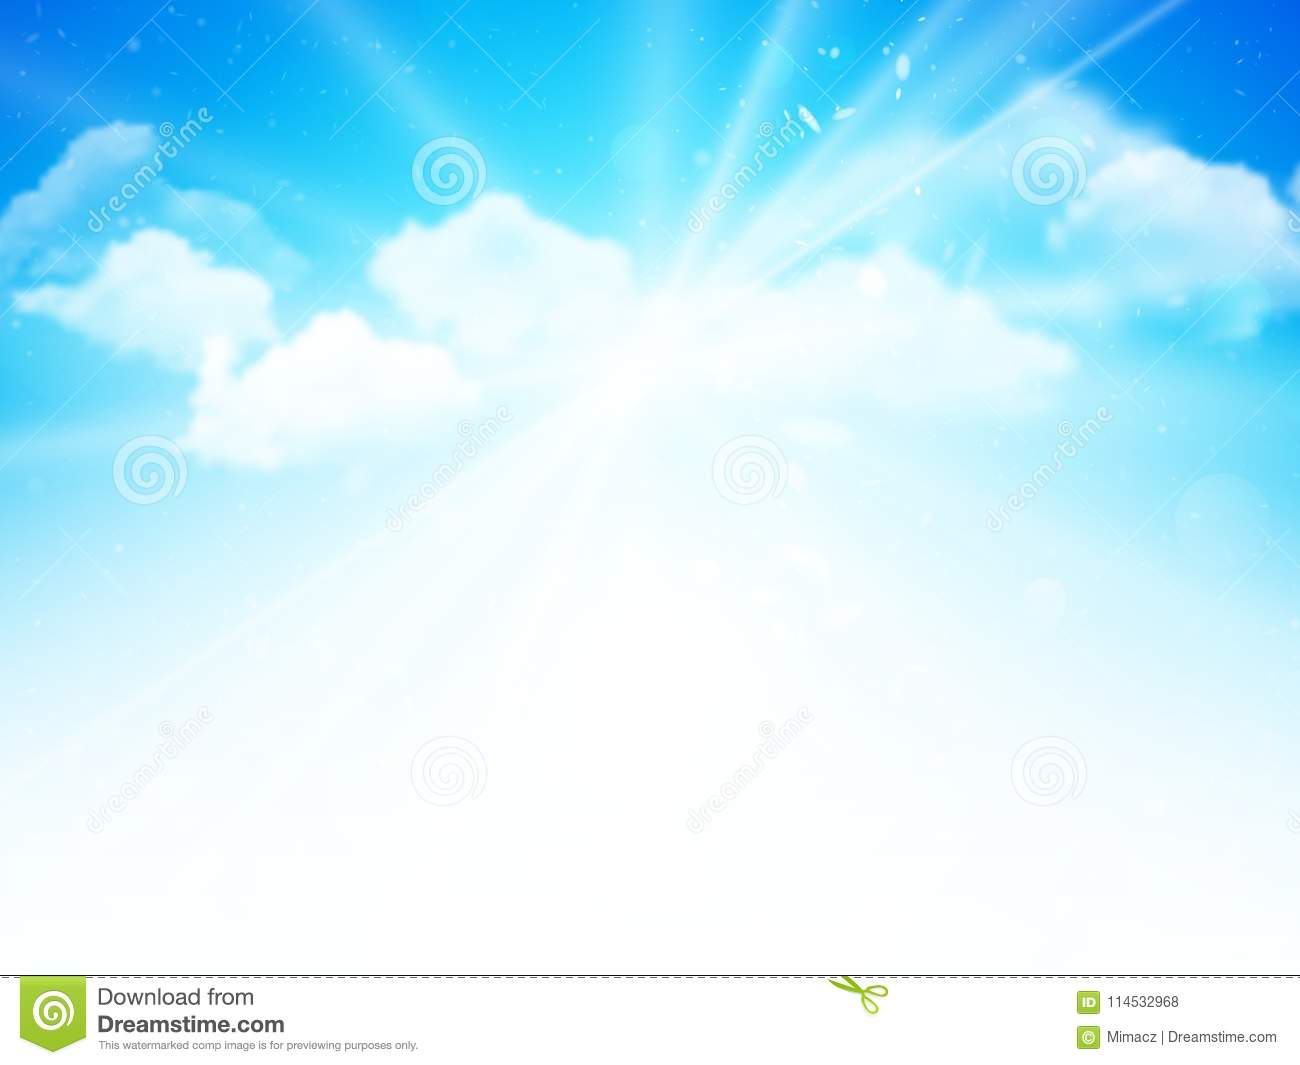 Sunshine sky, abstract blue clouds background